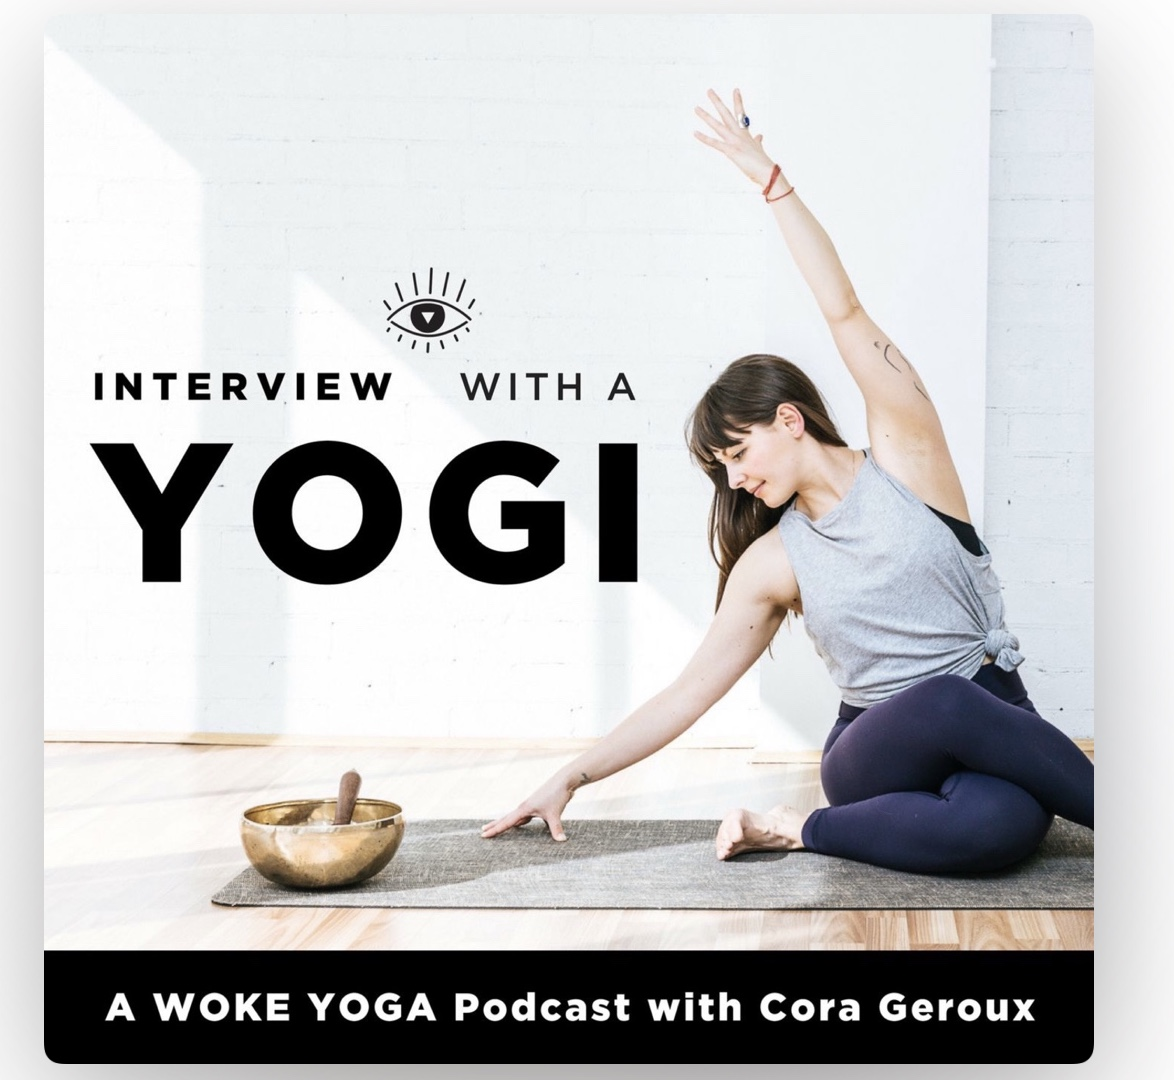 https://itunes.apple.com/ca/podcast/interview-with-a-yogi-a-woke-yoga-podcast-with-cora-geroux/id1448220756?mt=2